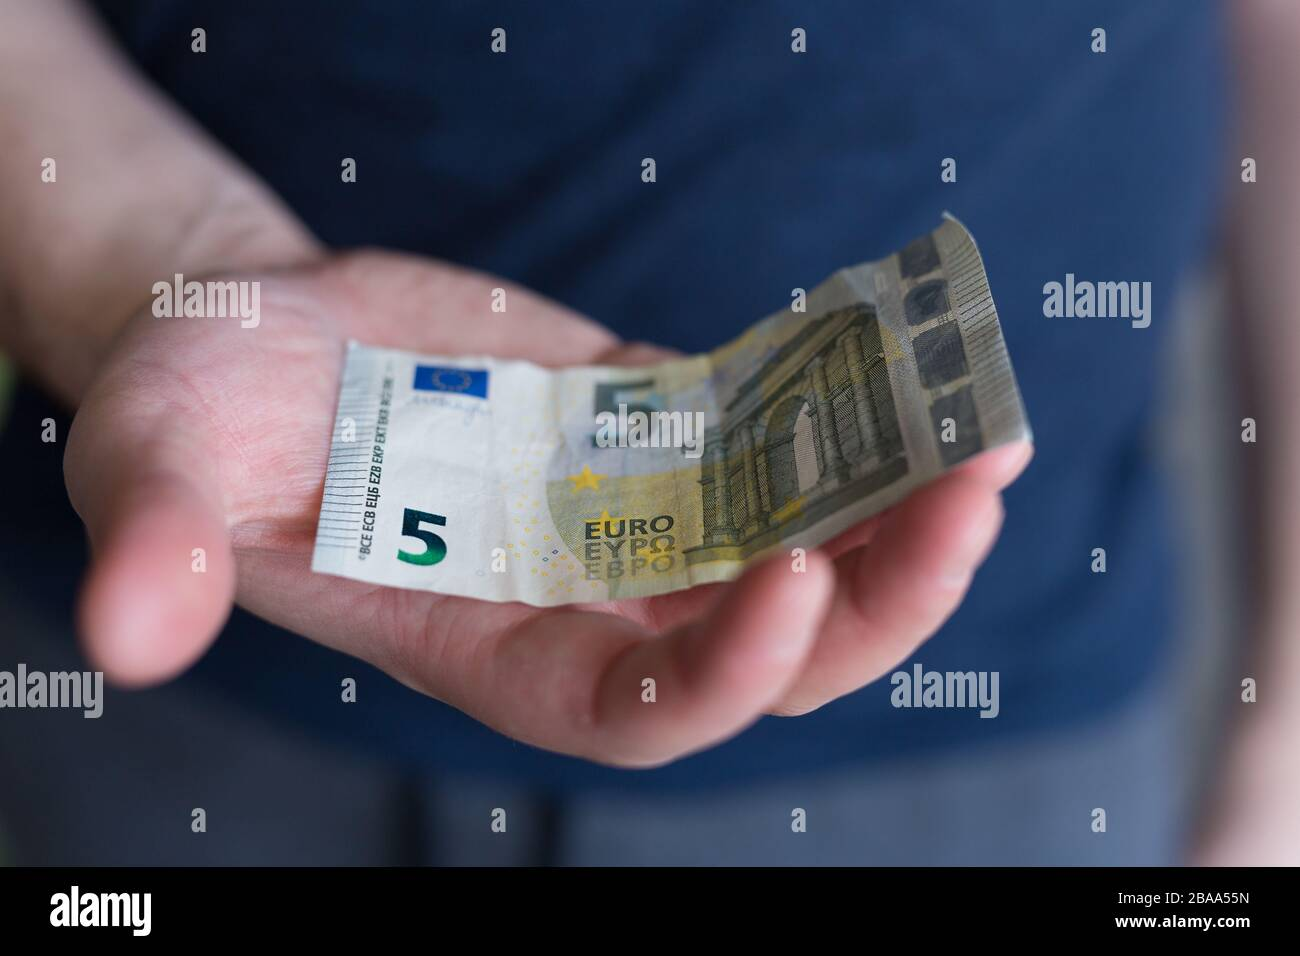 5 euro banknote. Man Hand holding cash paper money.Financial and money concept. job seeker. unemployed.  Stock Photo